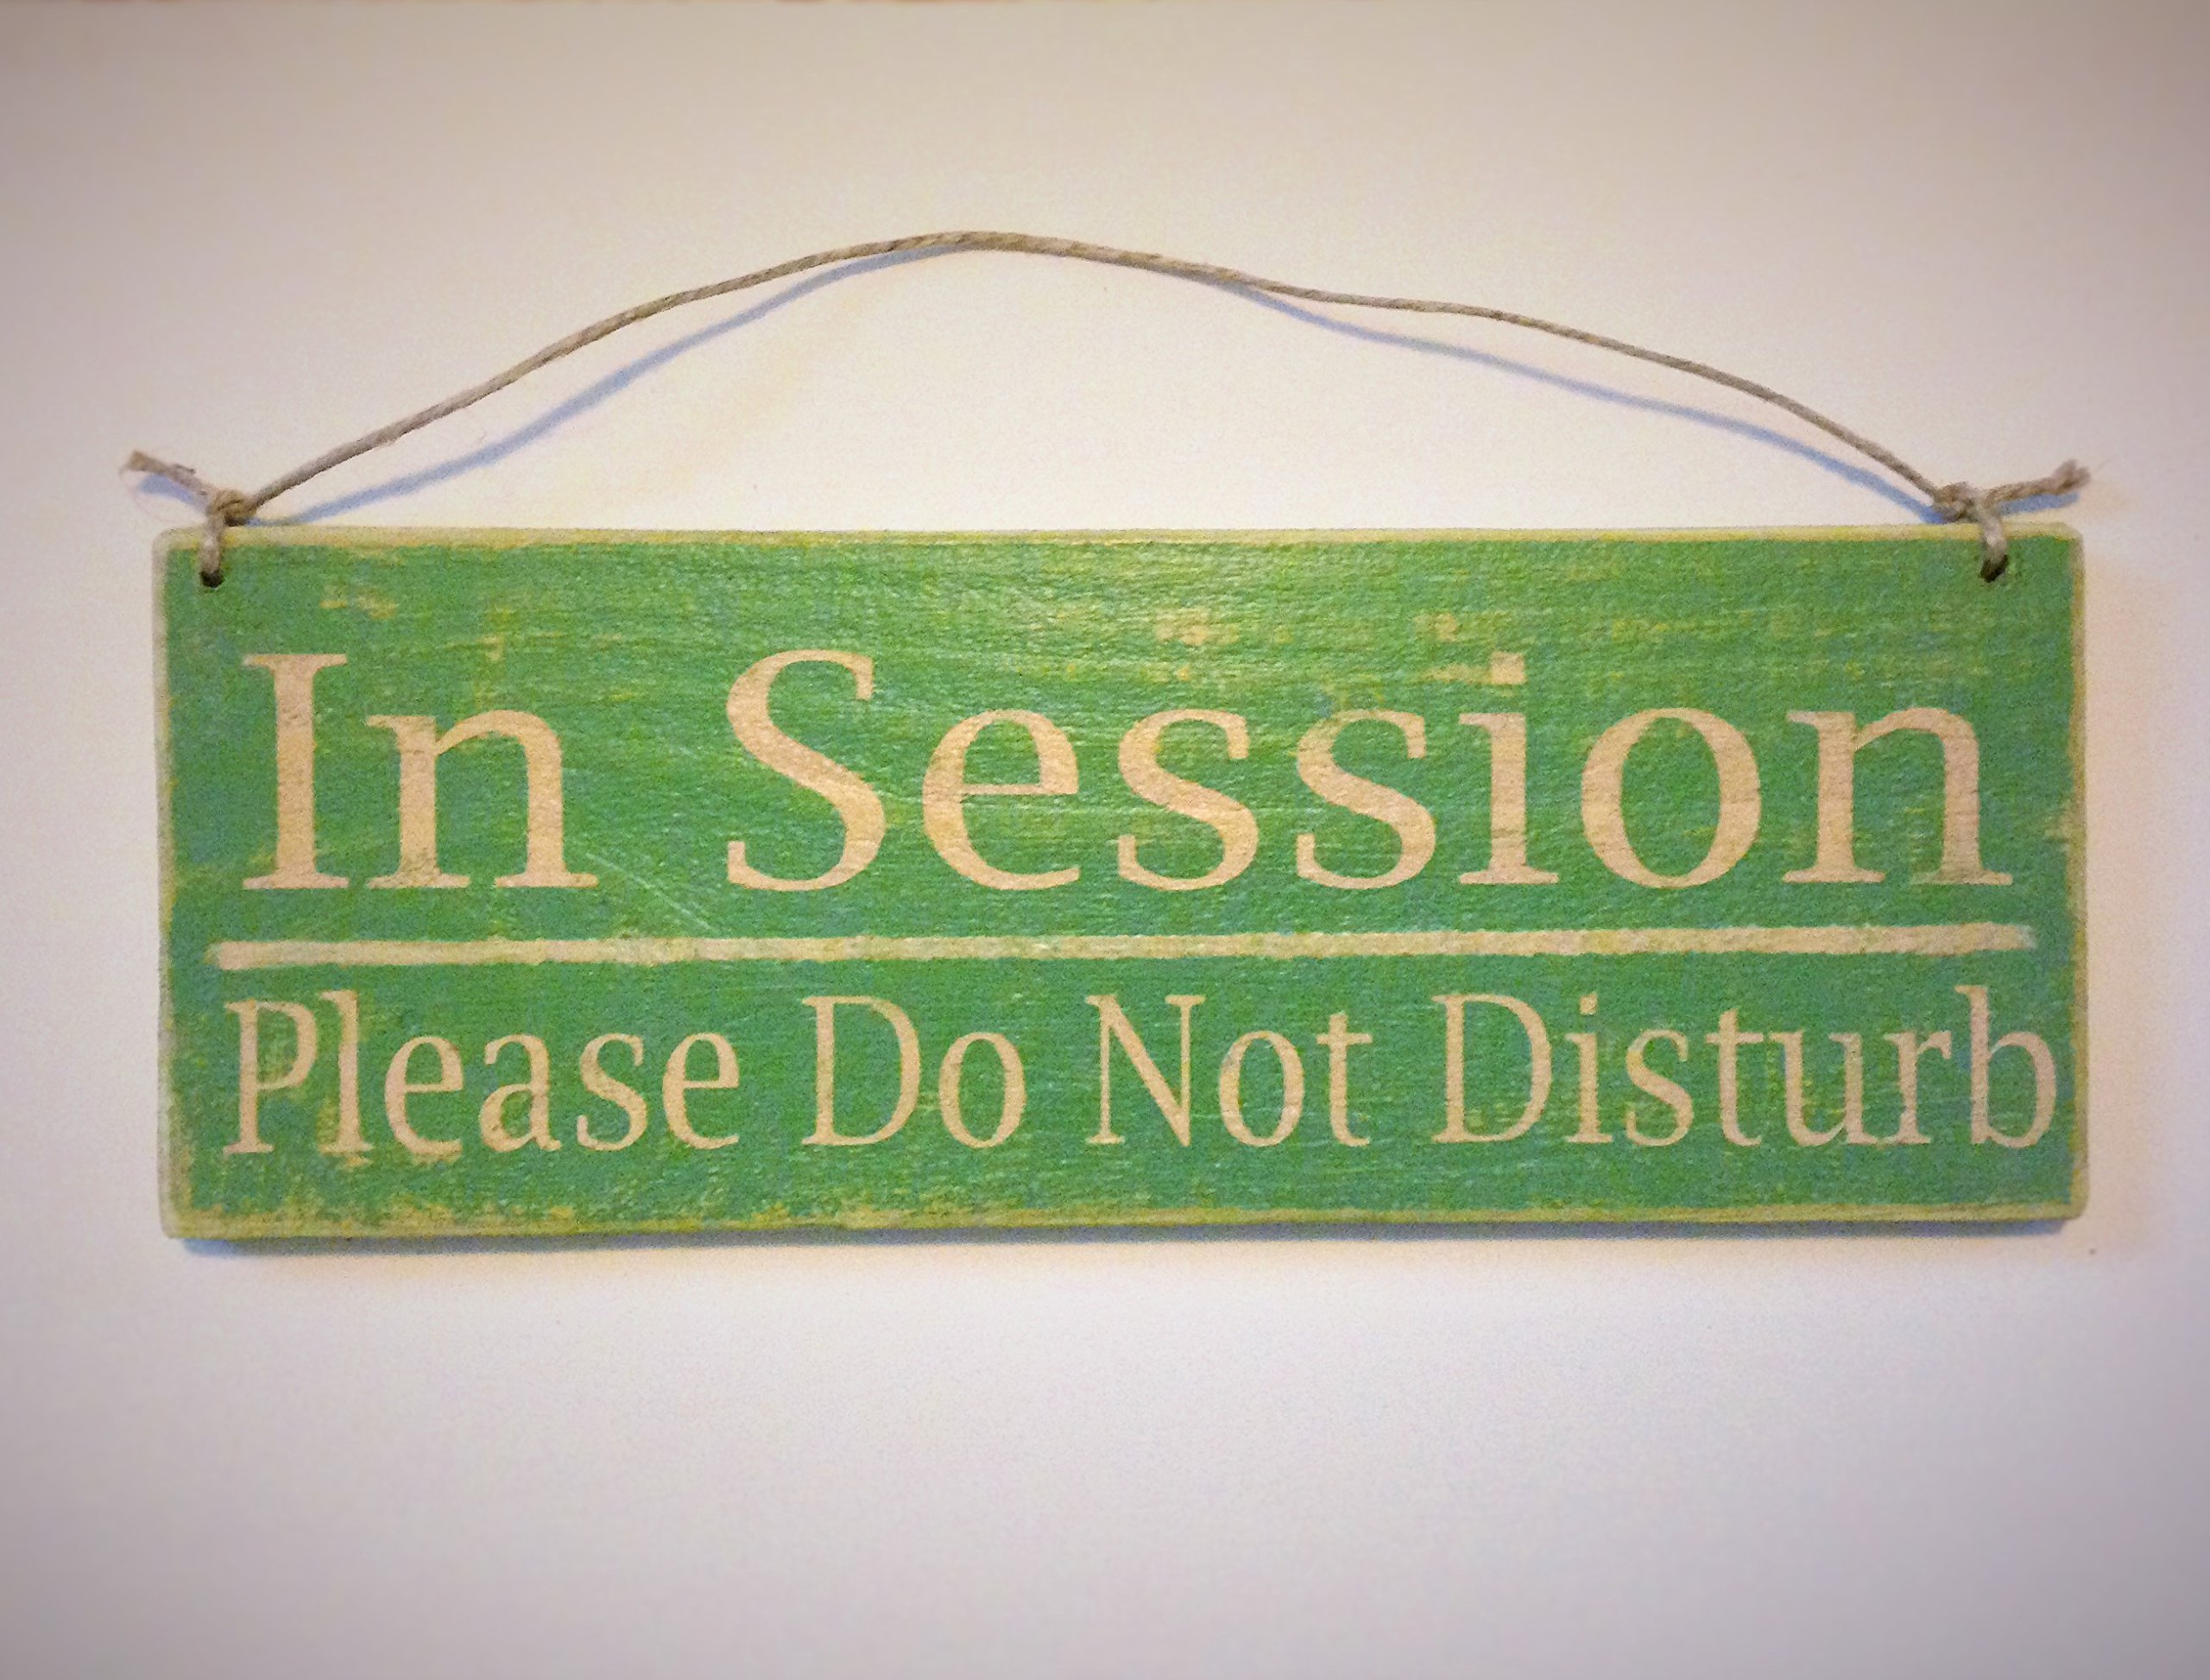 In Session Please Do Not Disturb 12x4 (Choose Color) Custom Rustic Salon Spa Office Meeting Wood Welcome Wood Sign